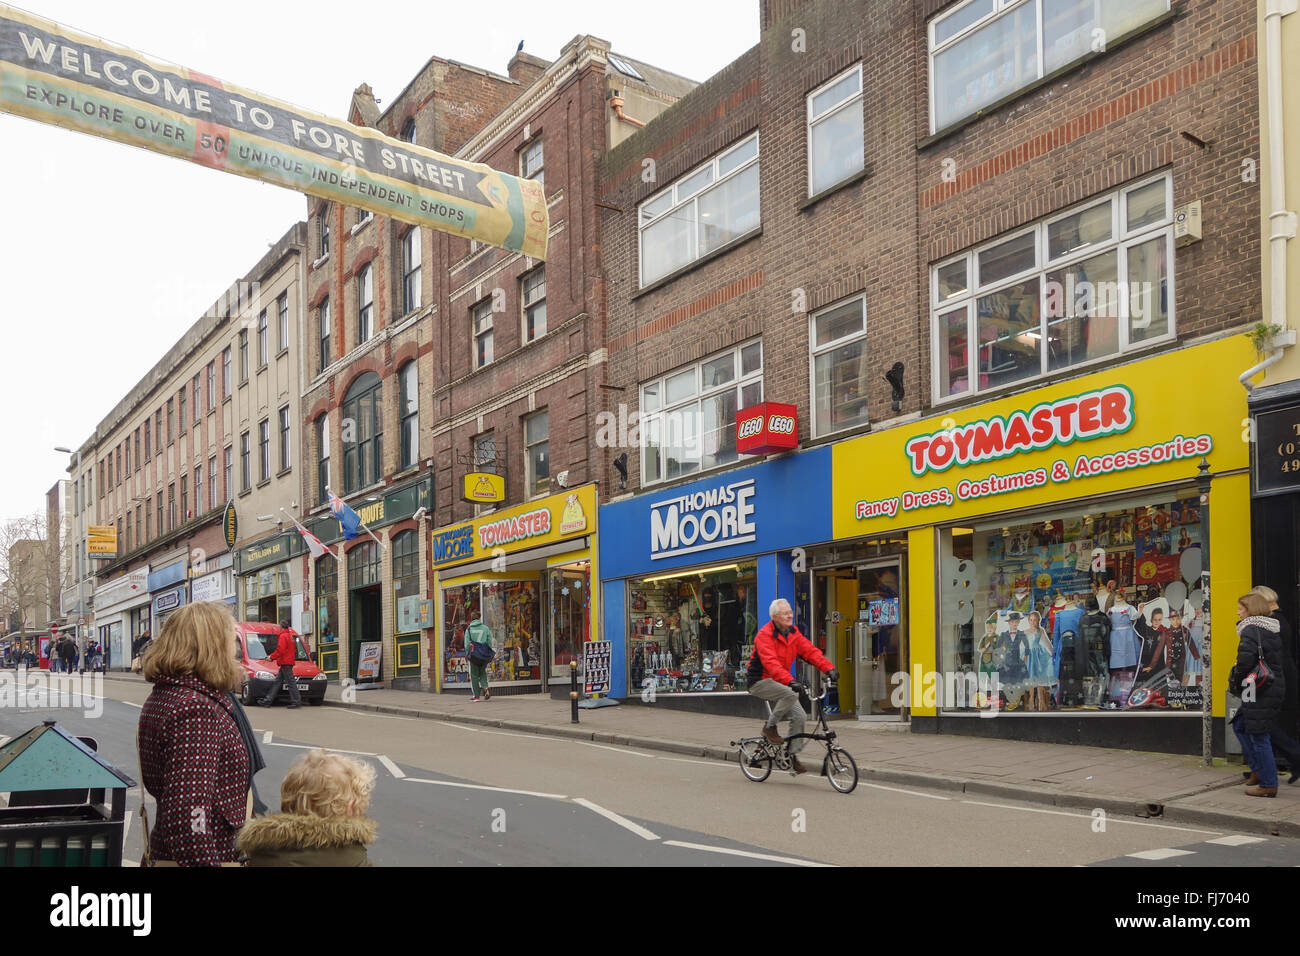 Thomas Moore Toymaster independent toy shop on Fore Street, Exeter - a street renowned for its independent shops - Stock Image